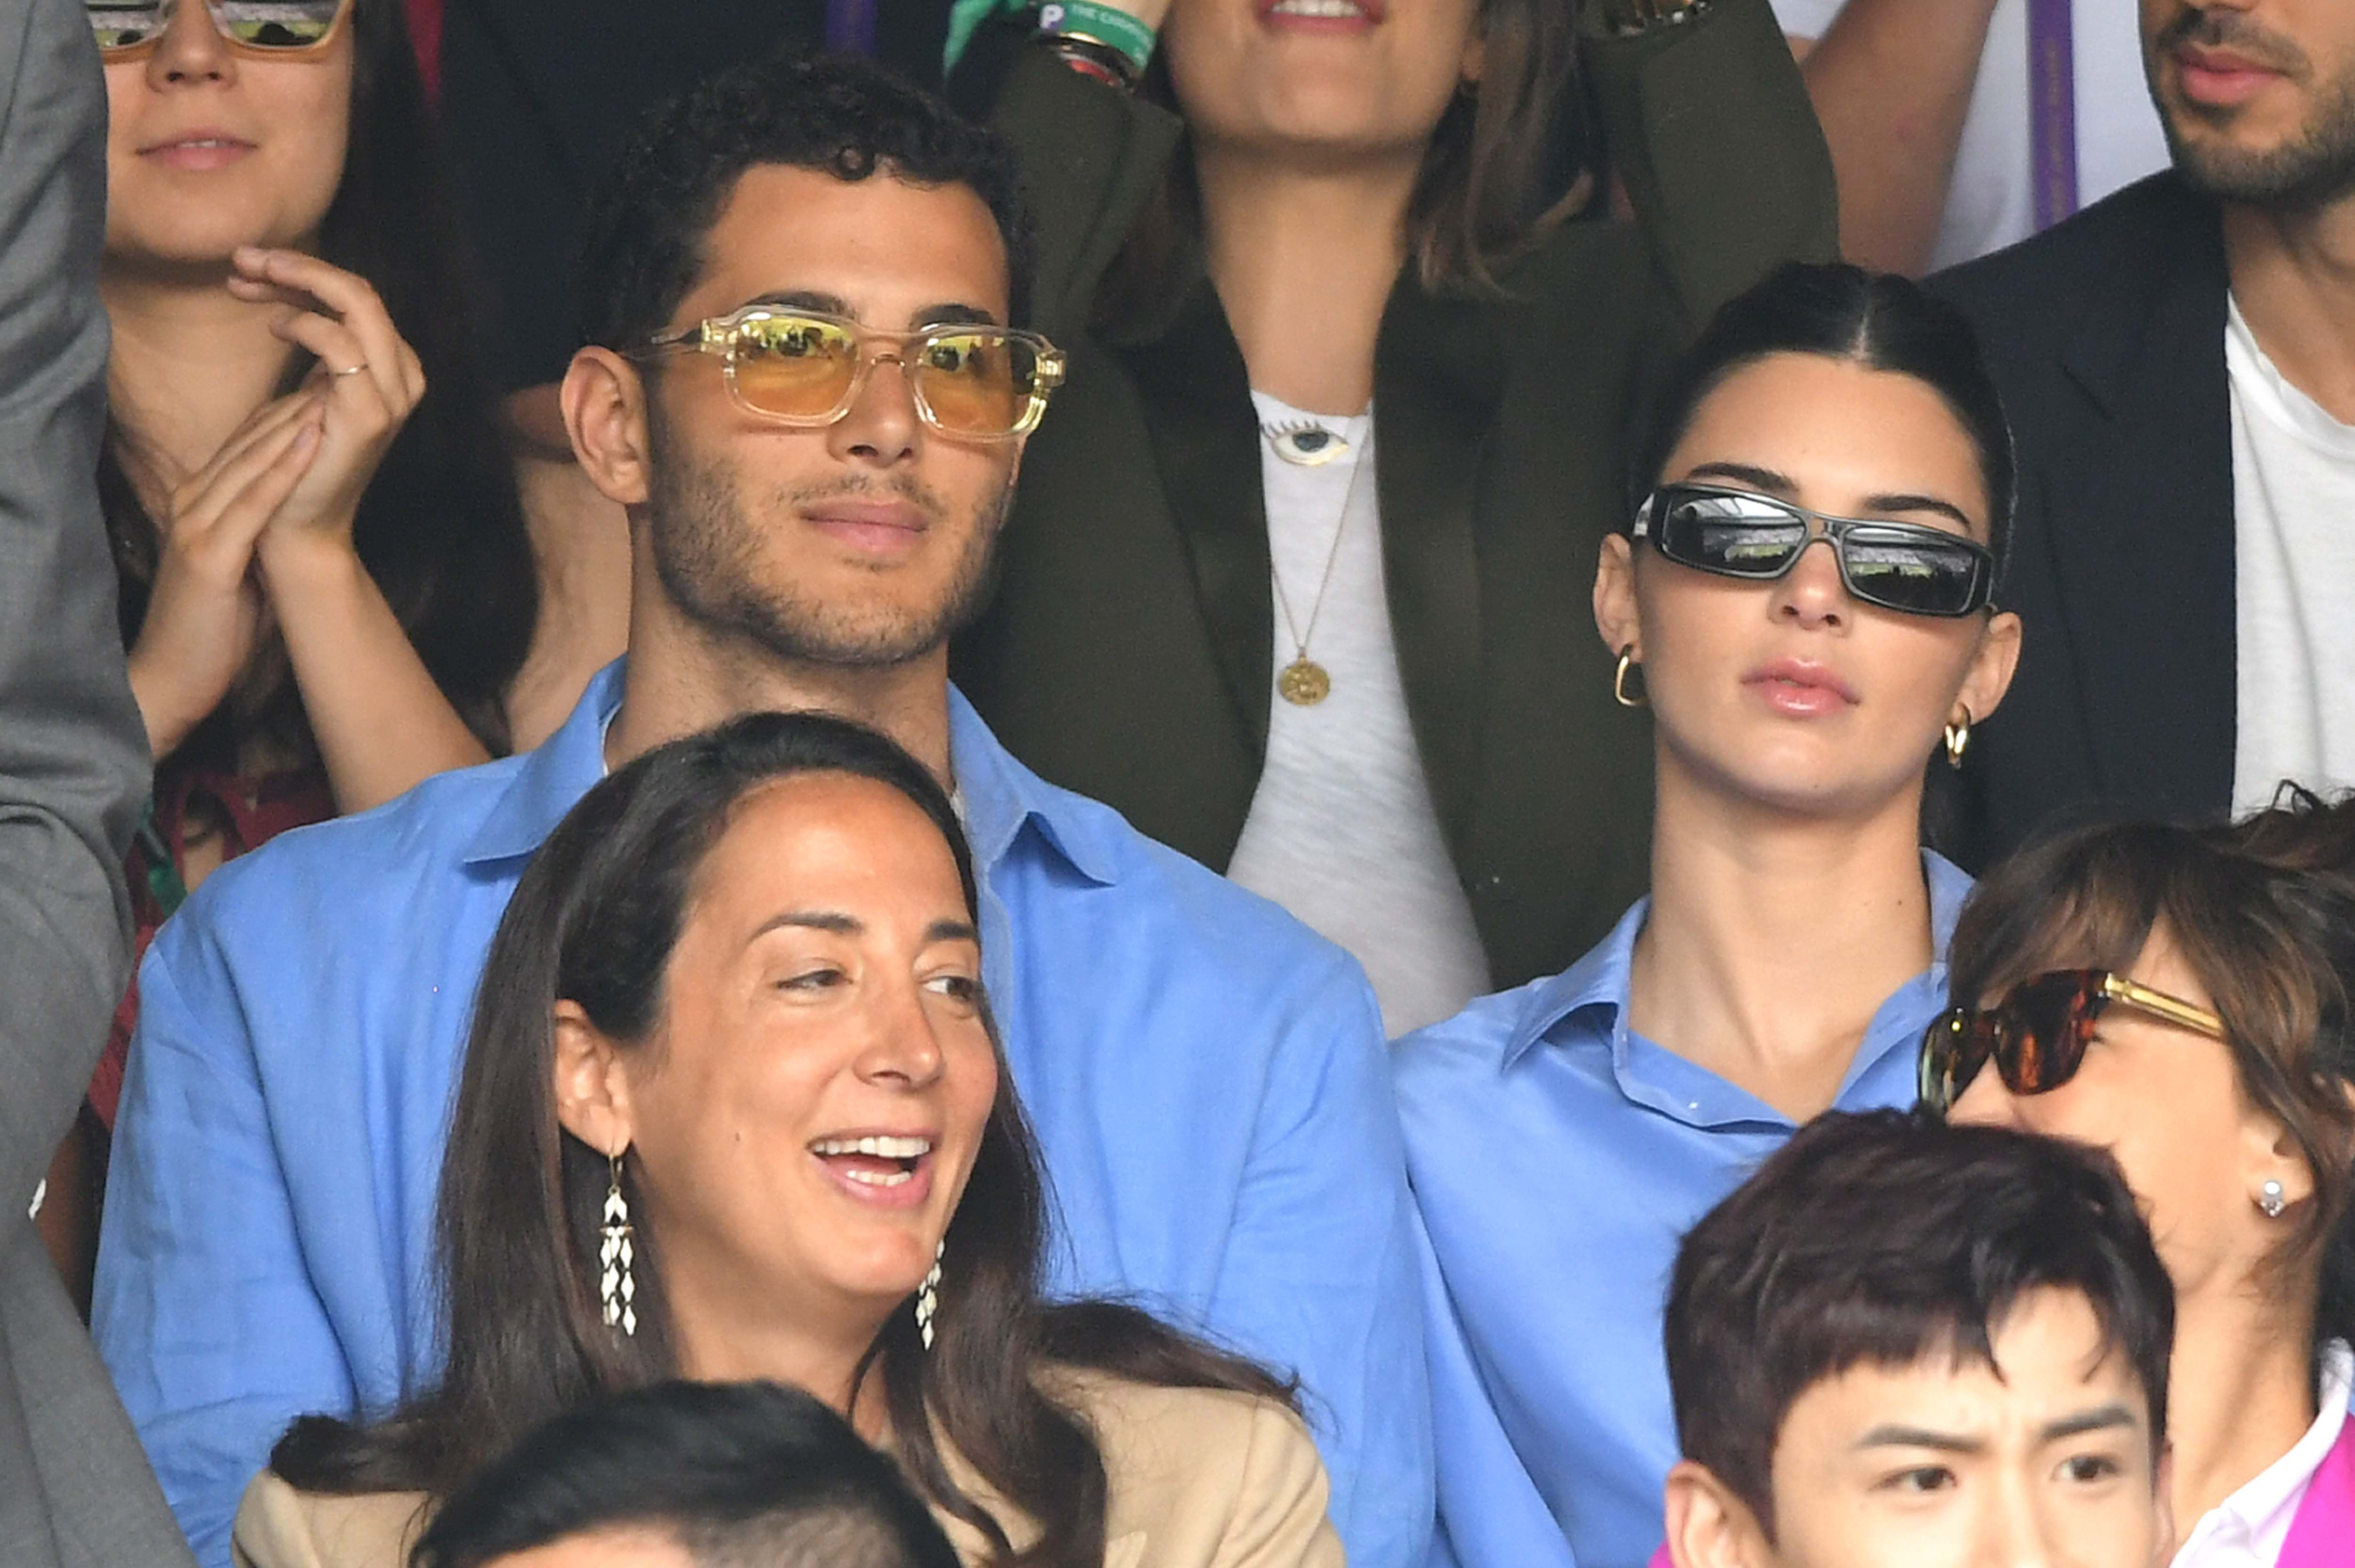 All About Fai Khadra, Kendall Jenner's Go-To Wedding Date